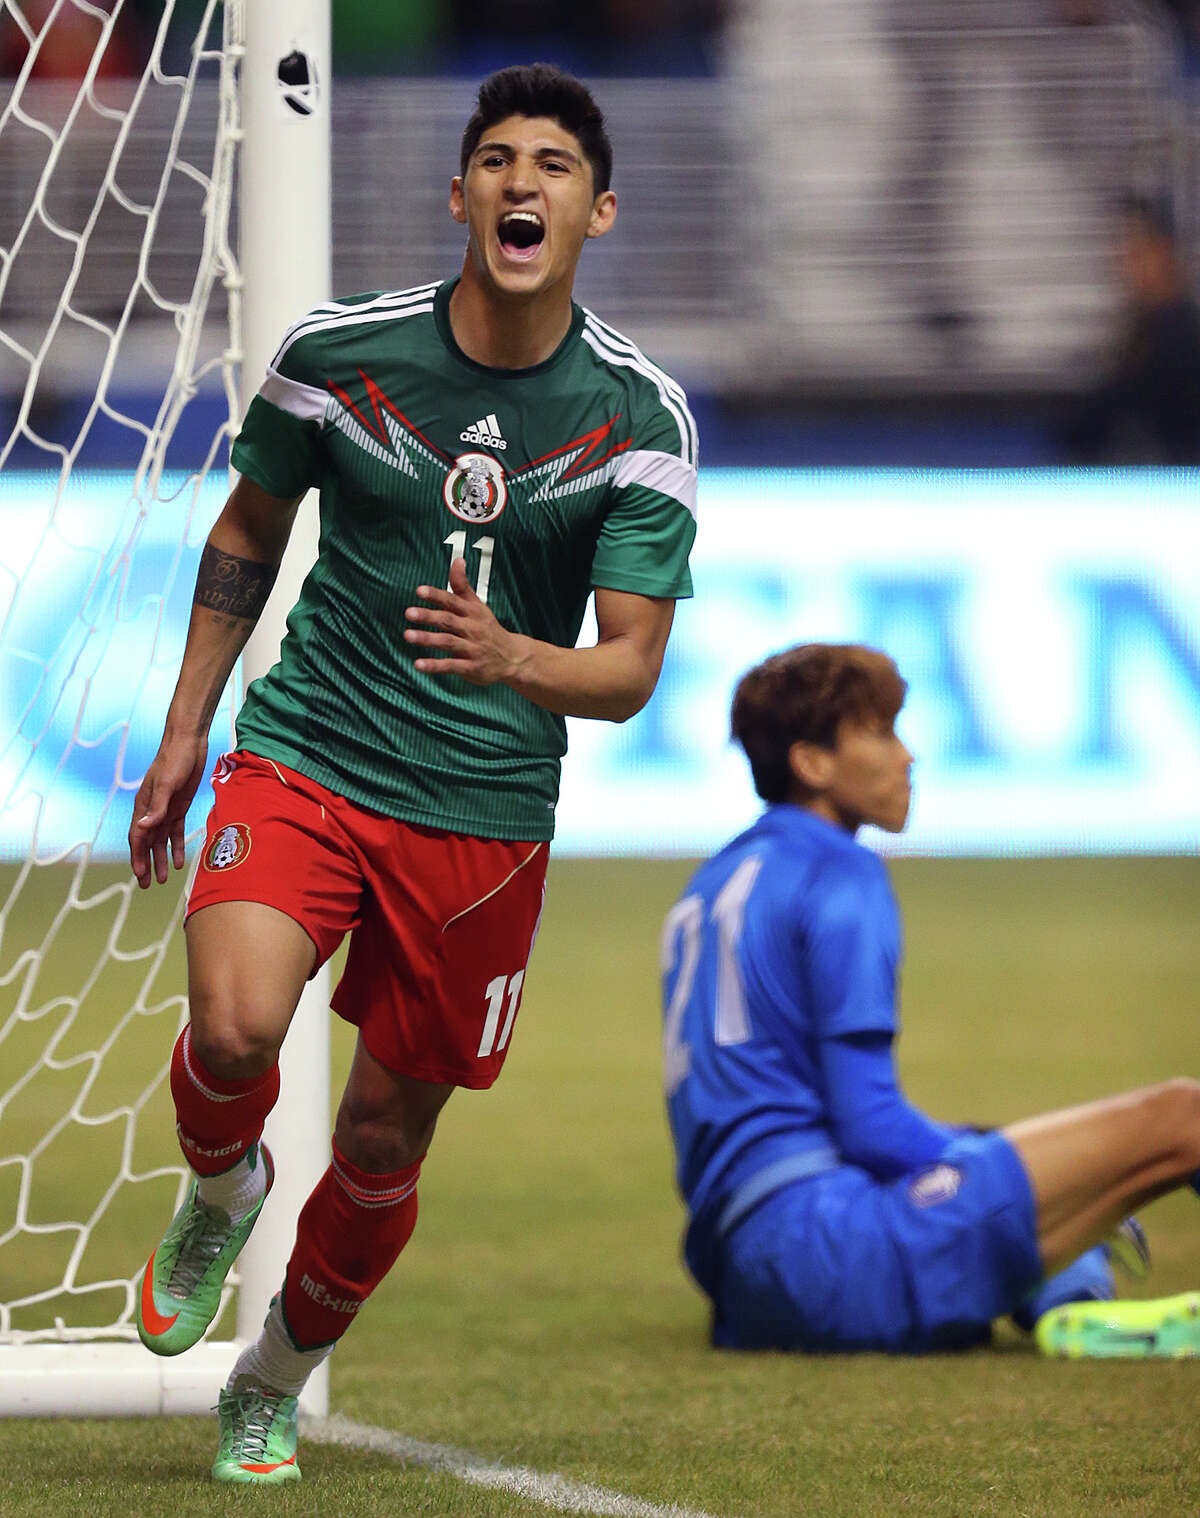 Mexico National Team forward Alan Pulido celebrates after scoring as South Korea goalkeeper Kim Seung-Gyu stays on the grass during the second half at the Alamodome, Wednesday, Jan. 29, 2014. Mexico beat Korea, 4-0.